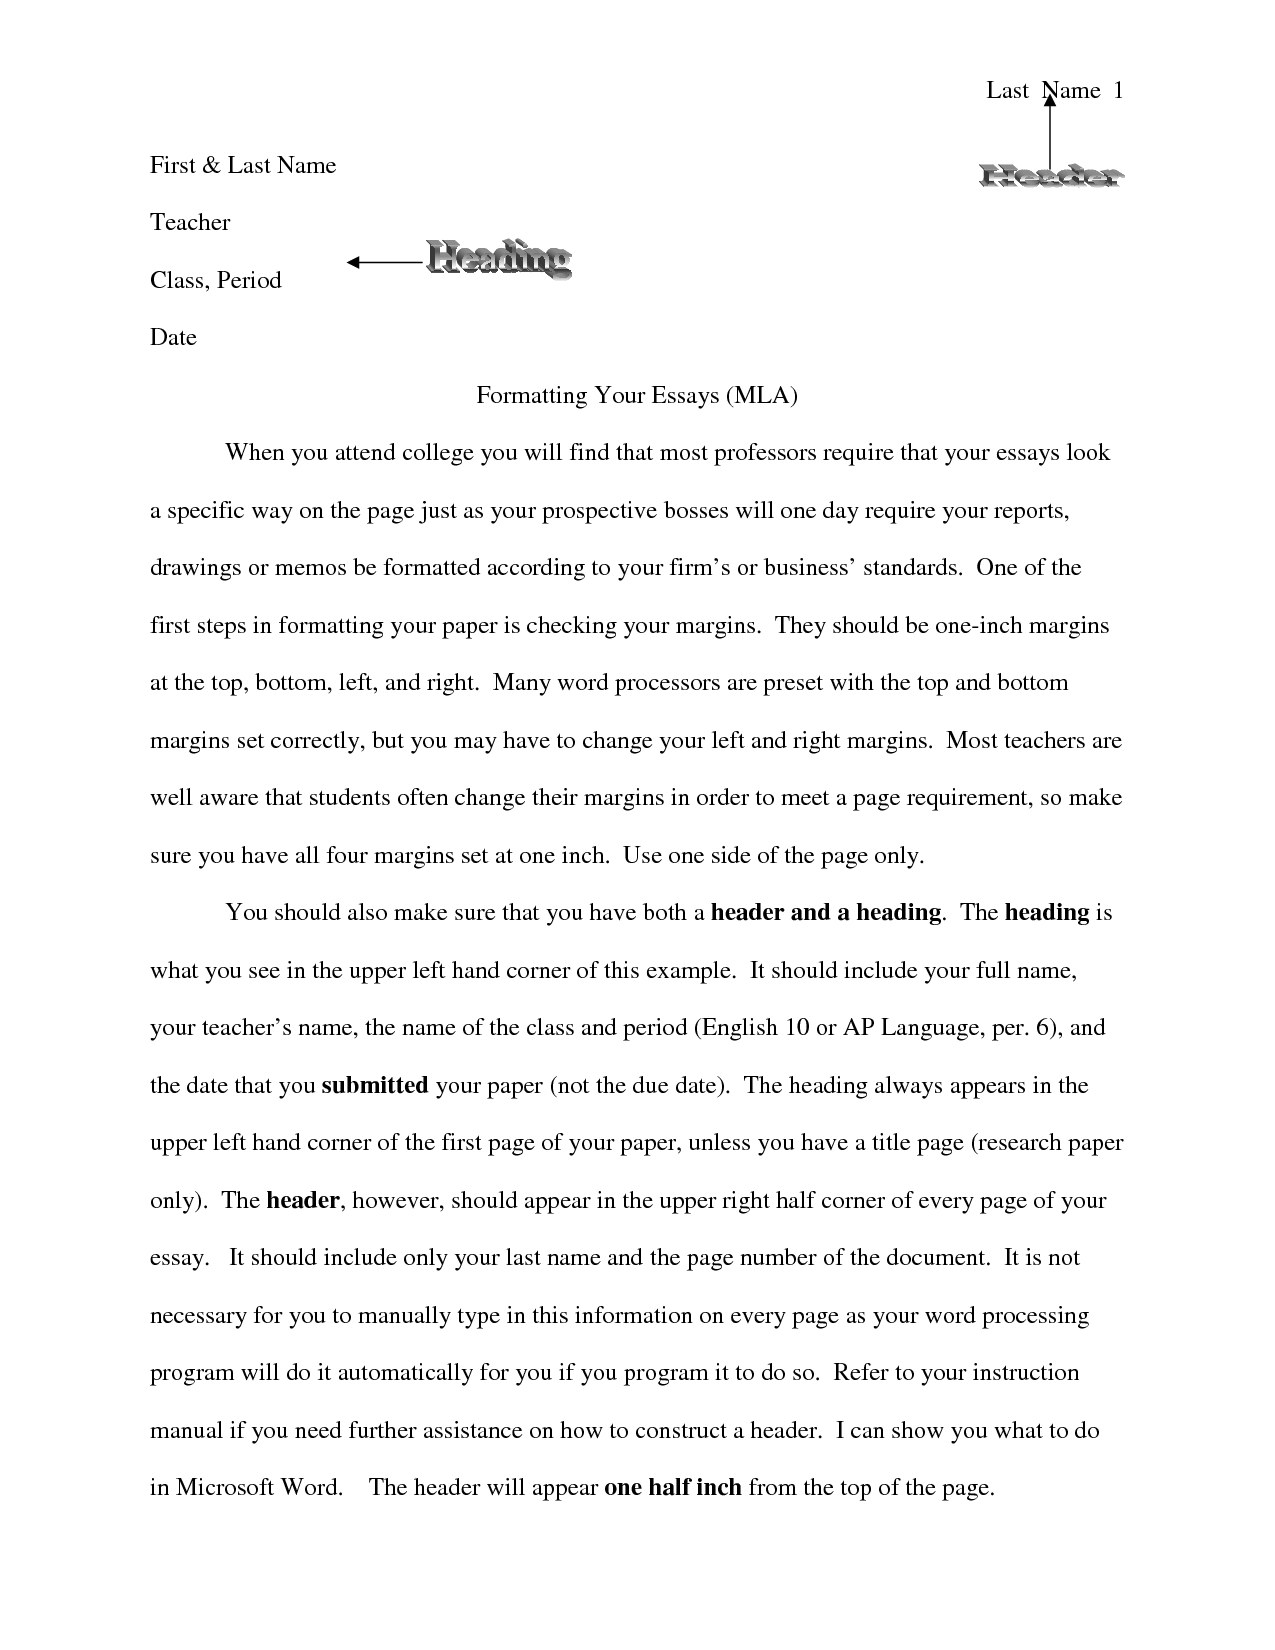 001 Essay Example Nnftftofsn College Format Wonderful Mla Writing Paper Sample Full